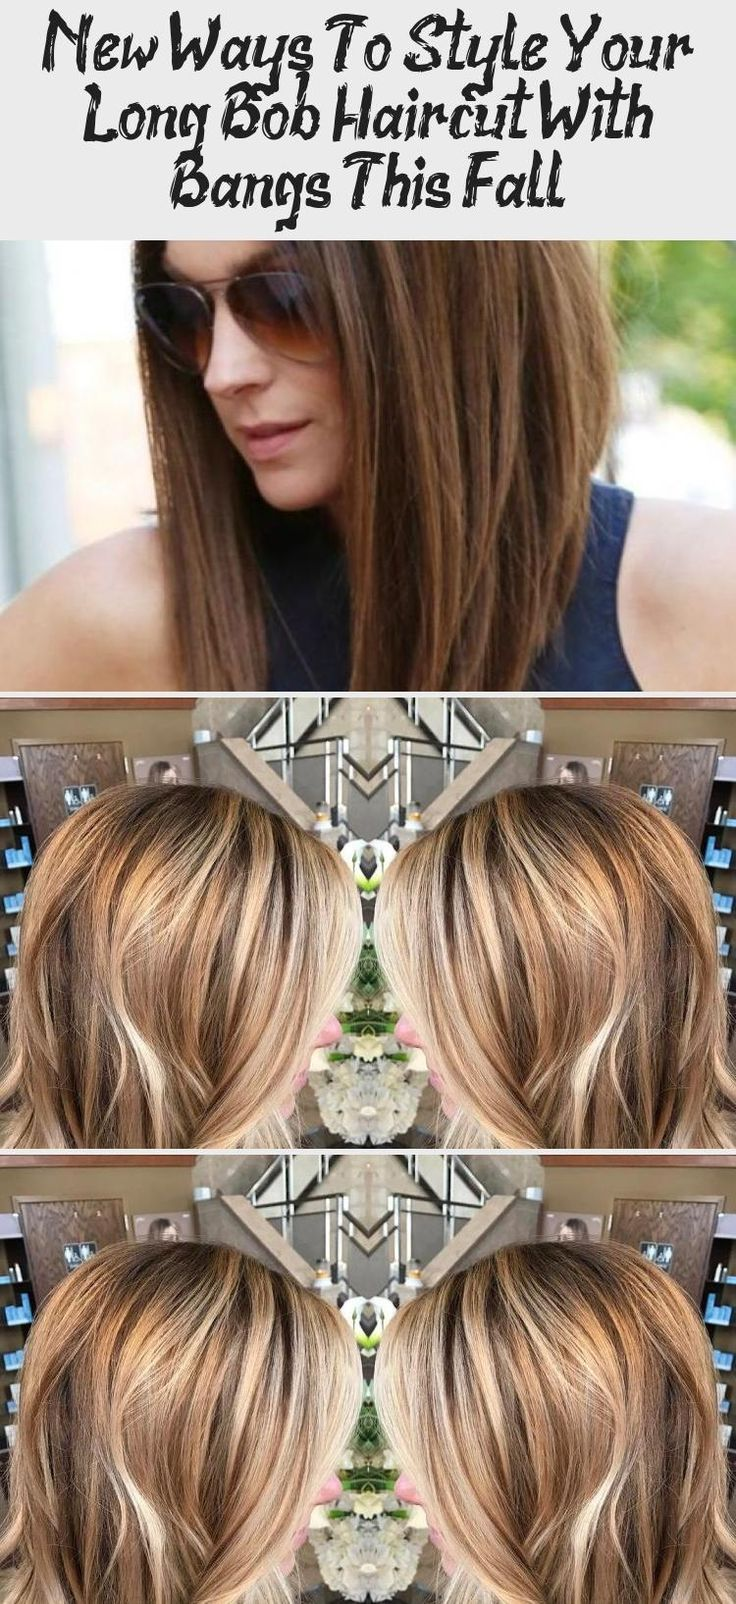 Chic Everyday Hairstyles For Medium Length Hair Women Medium Haircut 9 #EverydayHairstyles… in ...